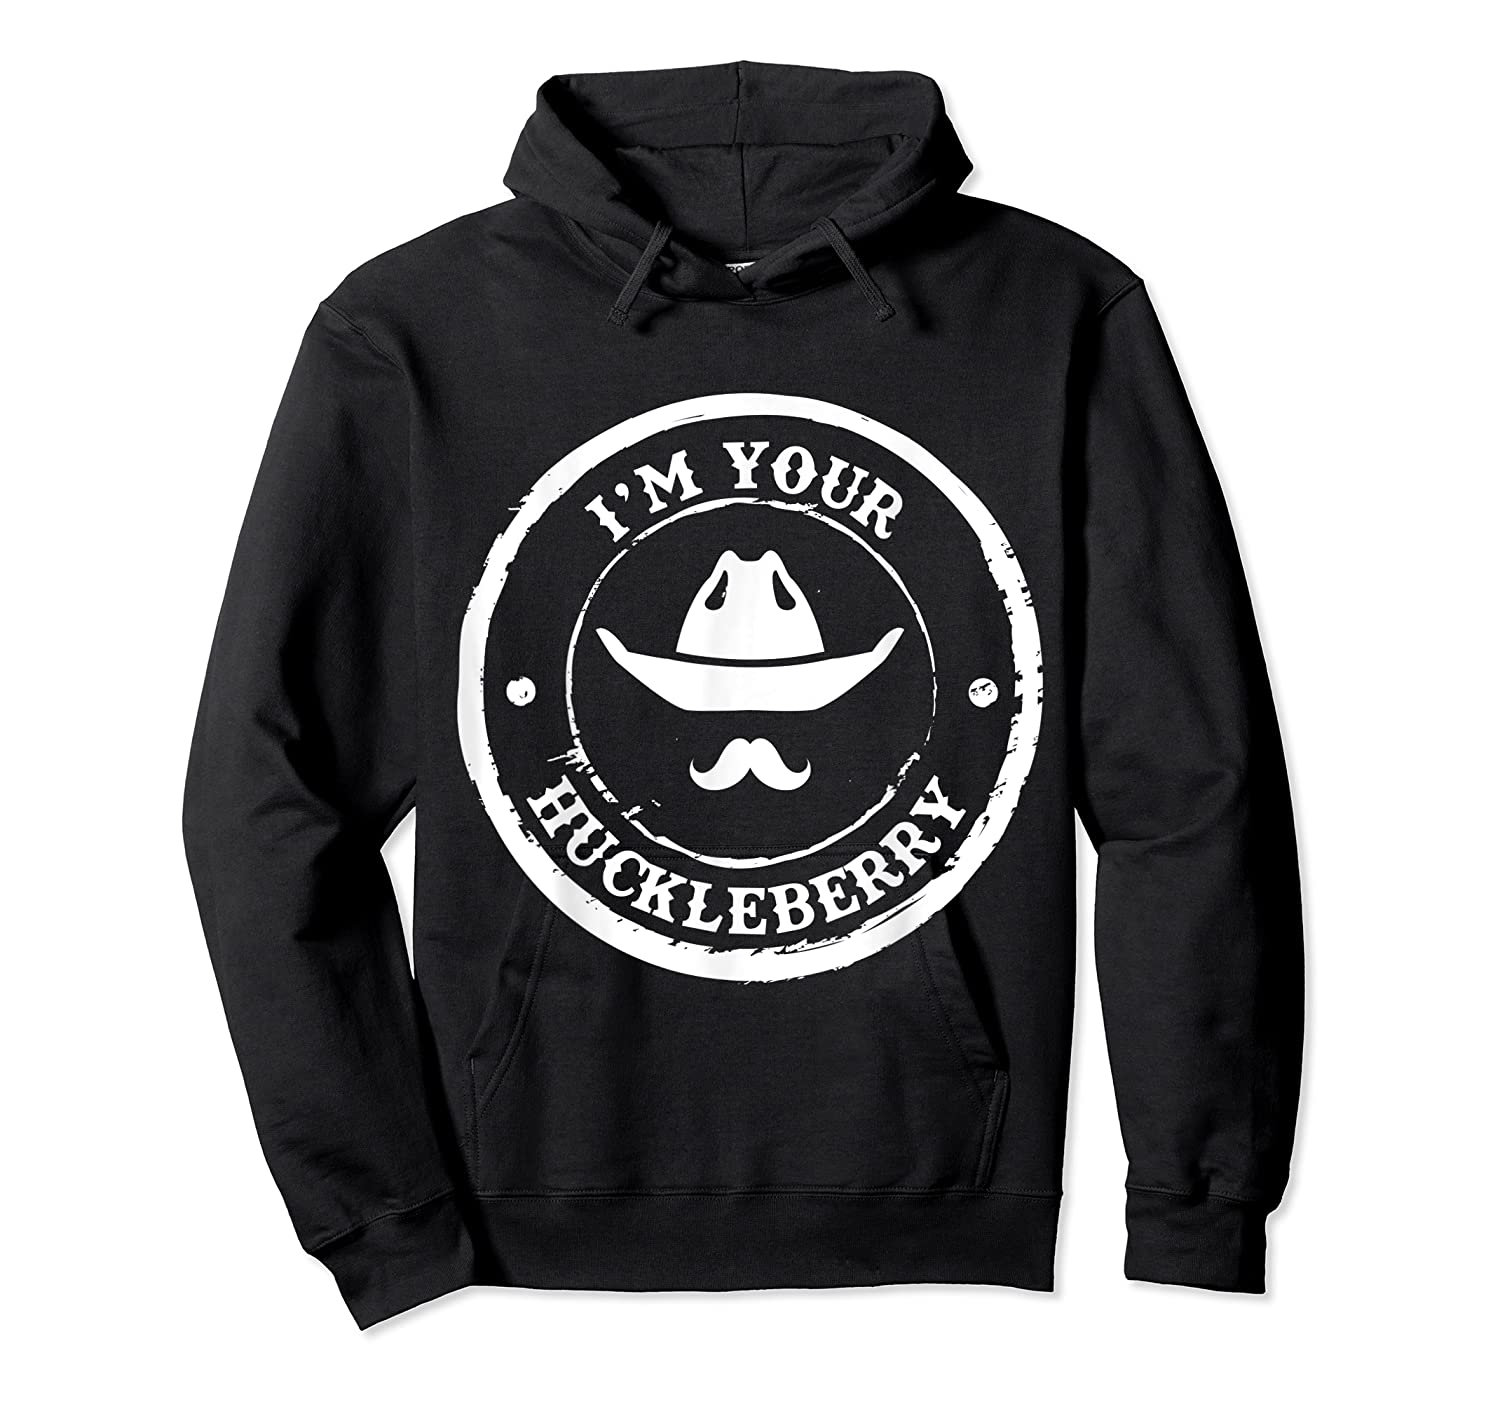 I M Your Huckleberry Old West T Shirt For Cow Mustache Unisex Pullover Hoodie